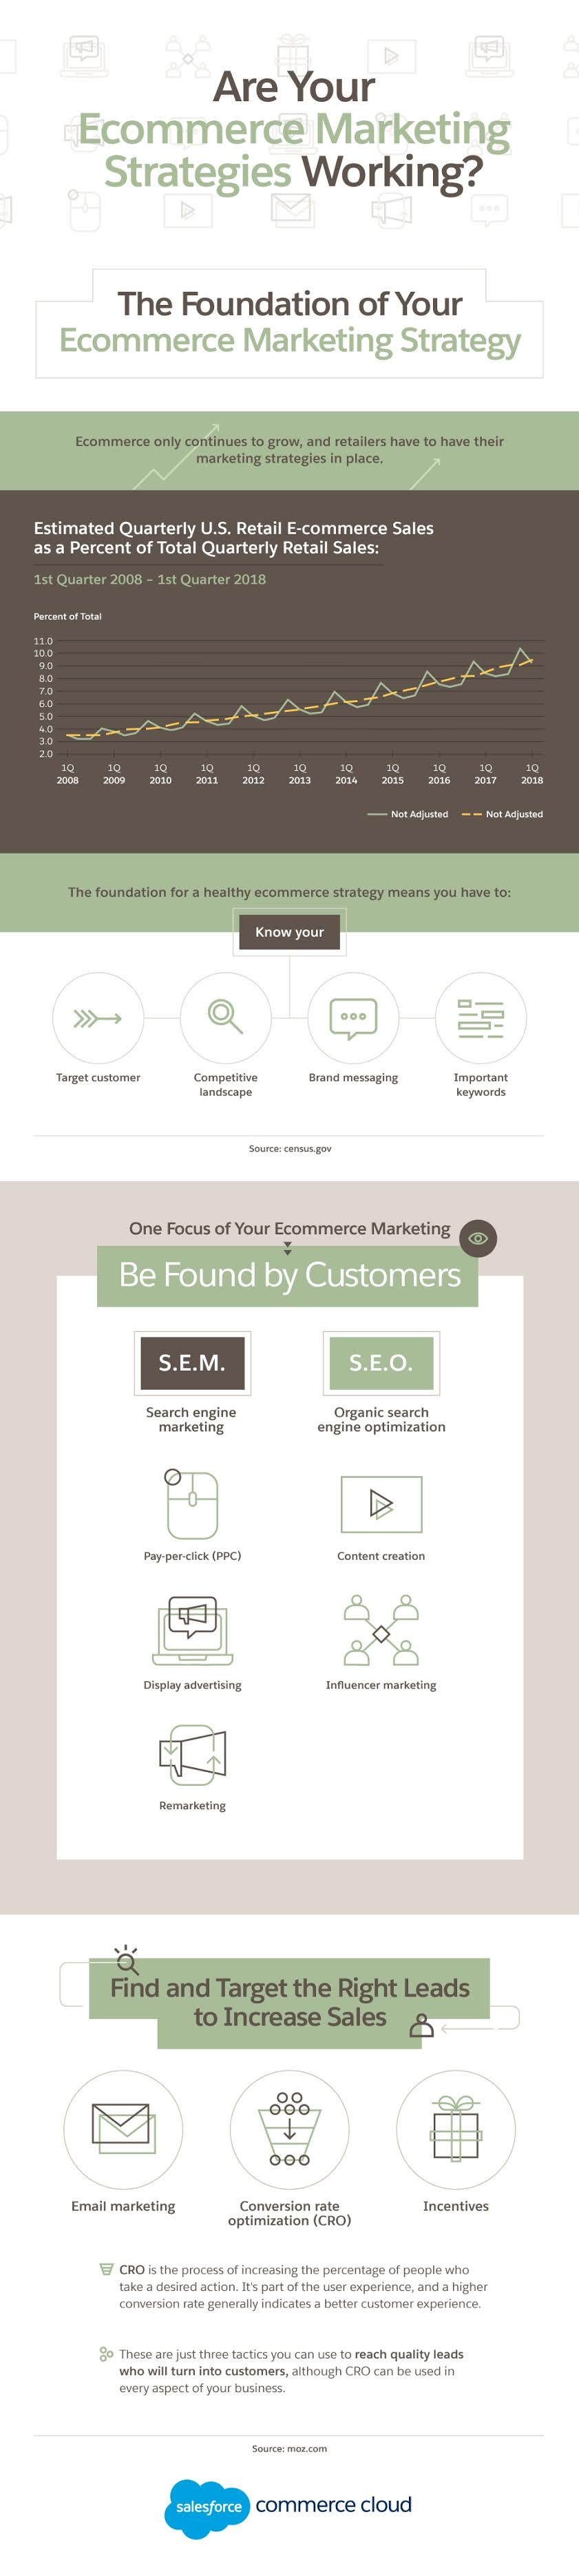 Are Your Ecommerce Marketing Strategies Working? #infographic #Ecommerce Marketing #Infographics #Marketing #Marketing Strategies #Ecommerce